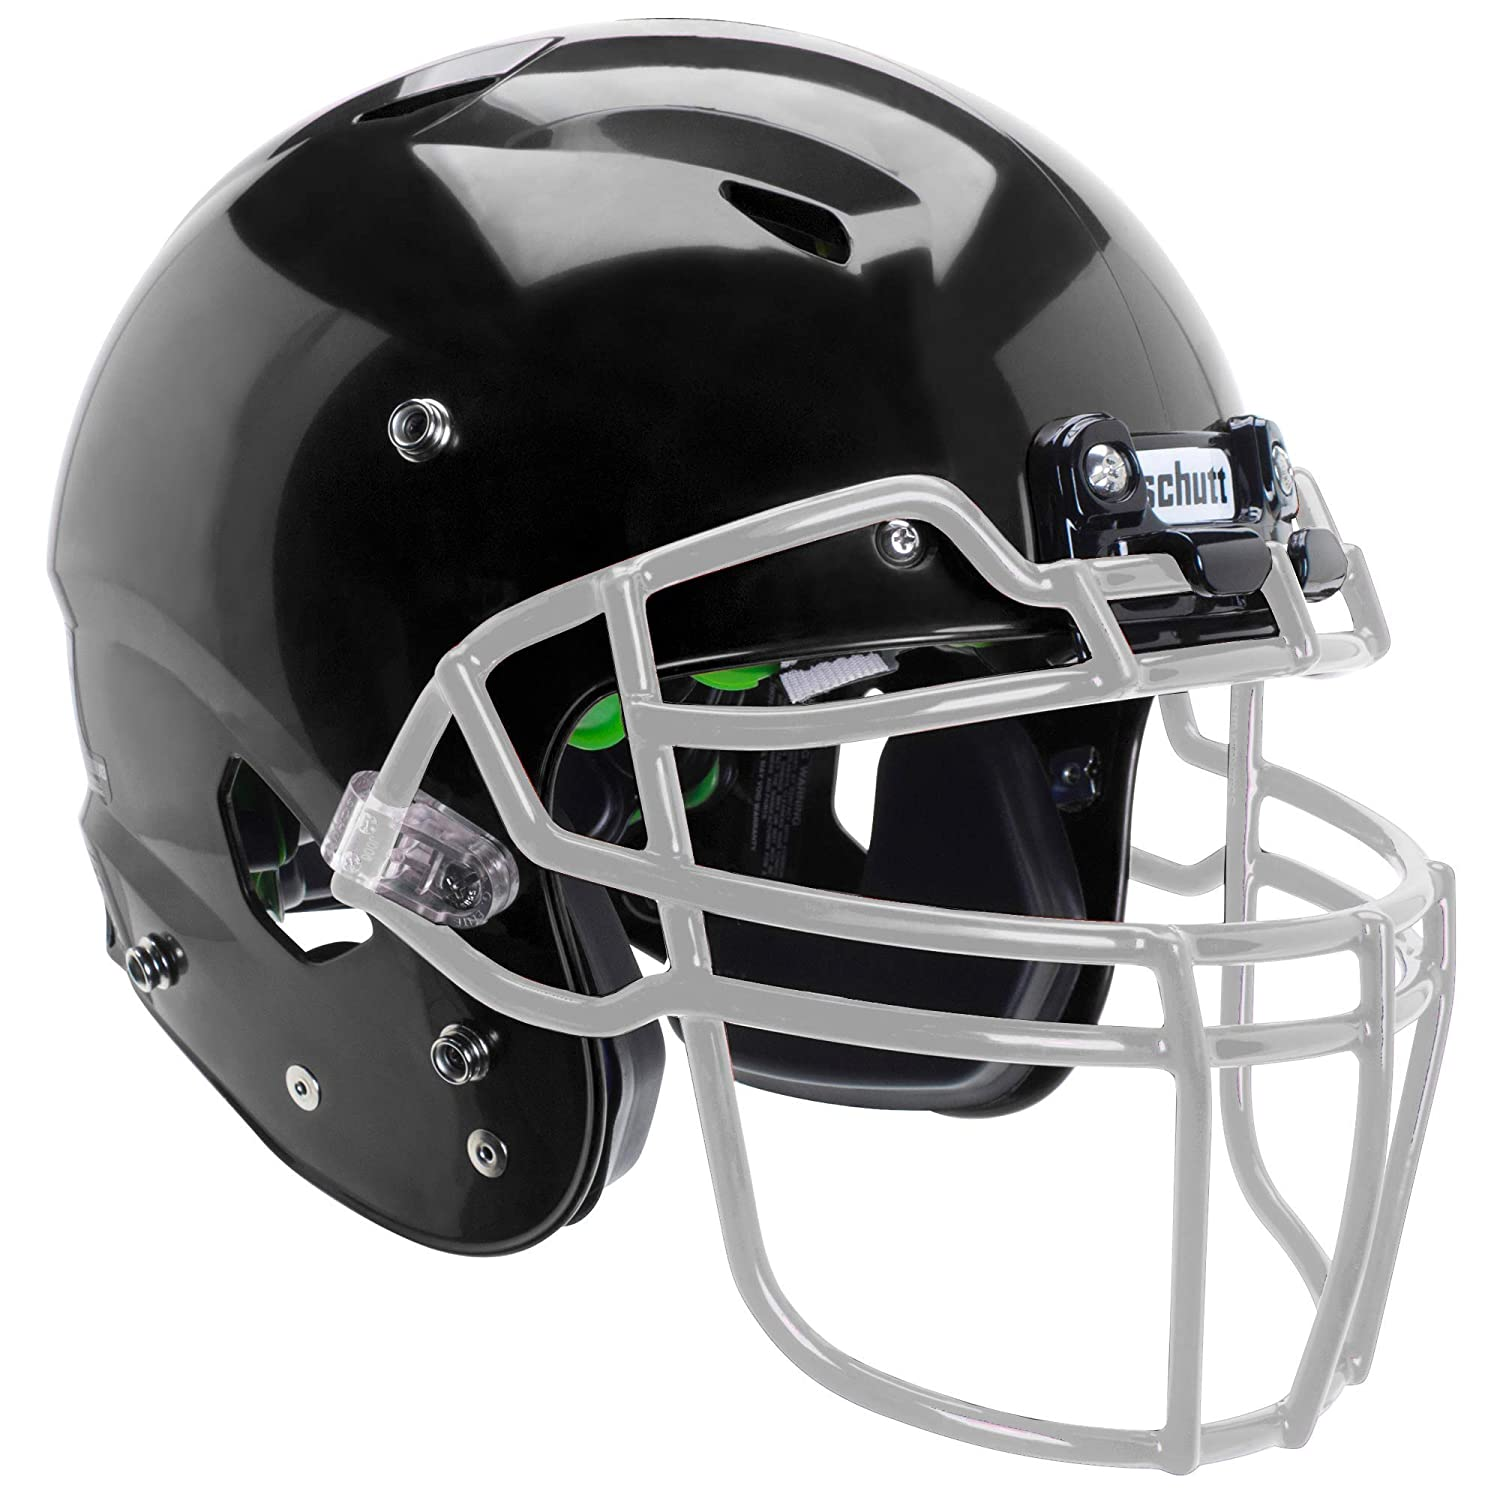 Schutt Sports Vengeance A3 Youth Football Helmet (Facemask NOT Included)